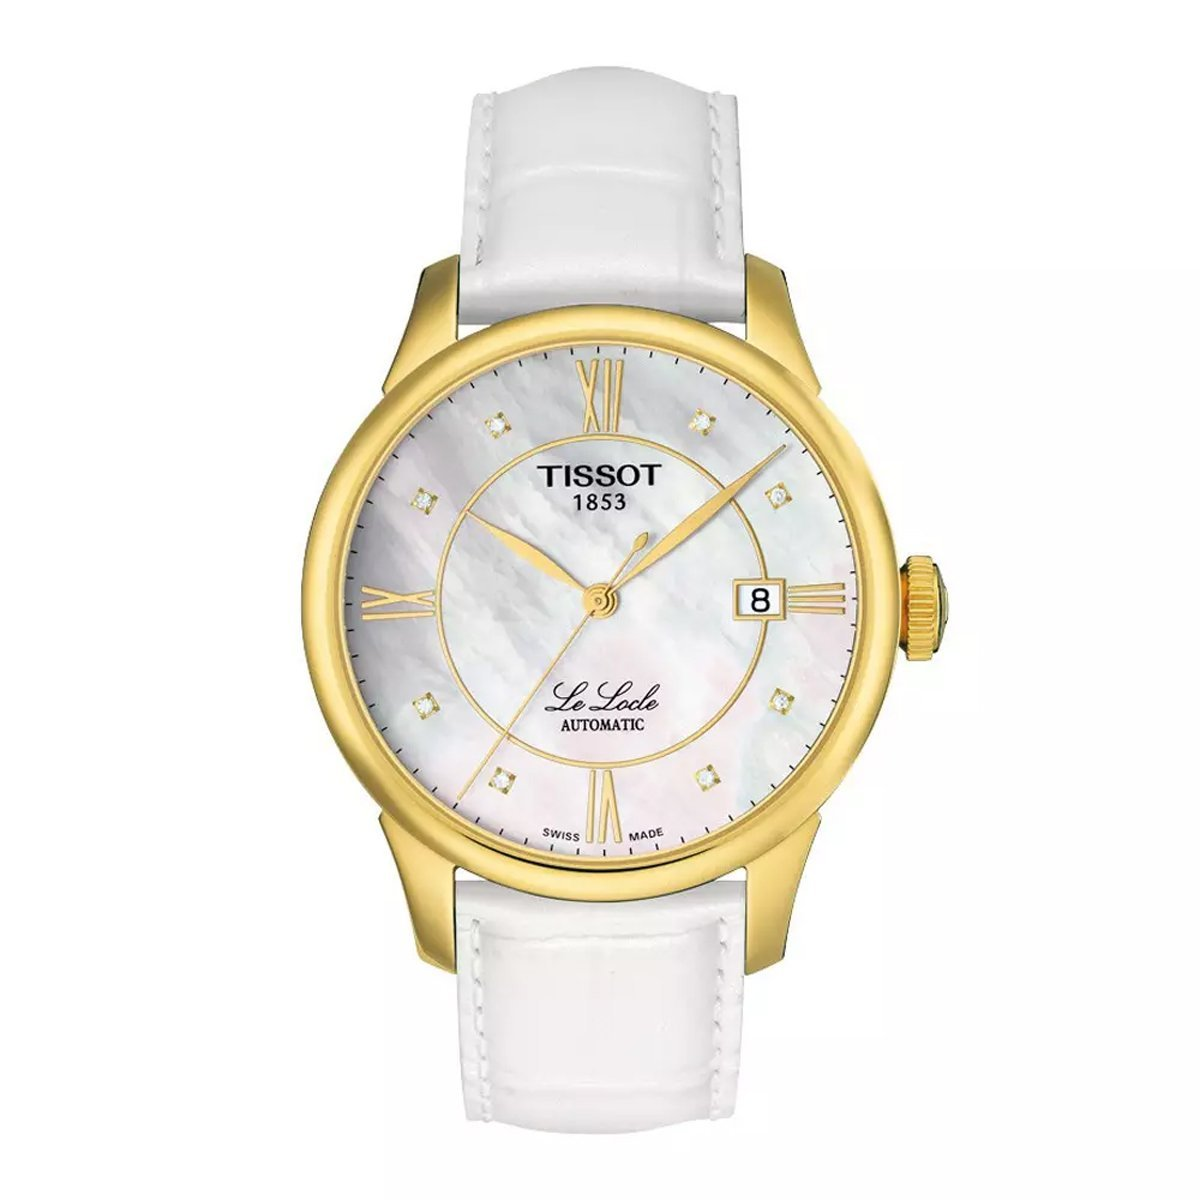 Tissot T-Classic Le Locle Diamond - Watches & Crystals